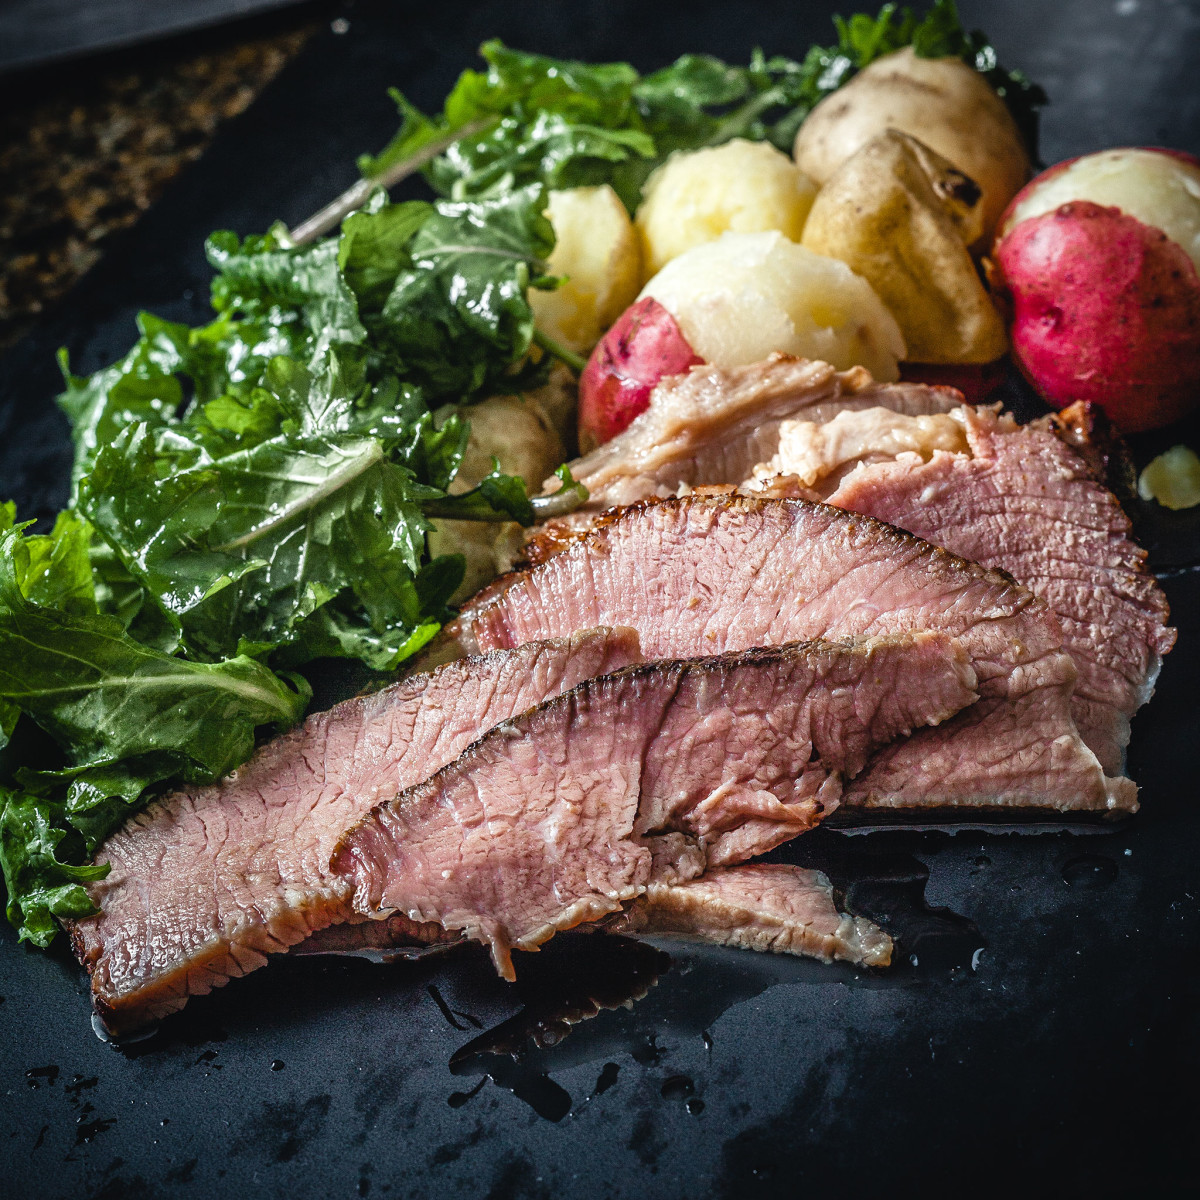 Meat and Potatoes. Sous vide brisket. Baby creamer potatoes. Baby kale Salad @ thatothercookingblog.com